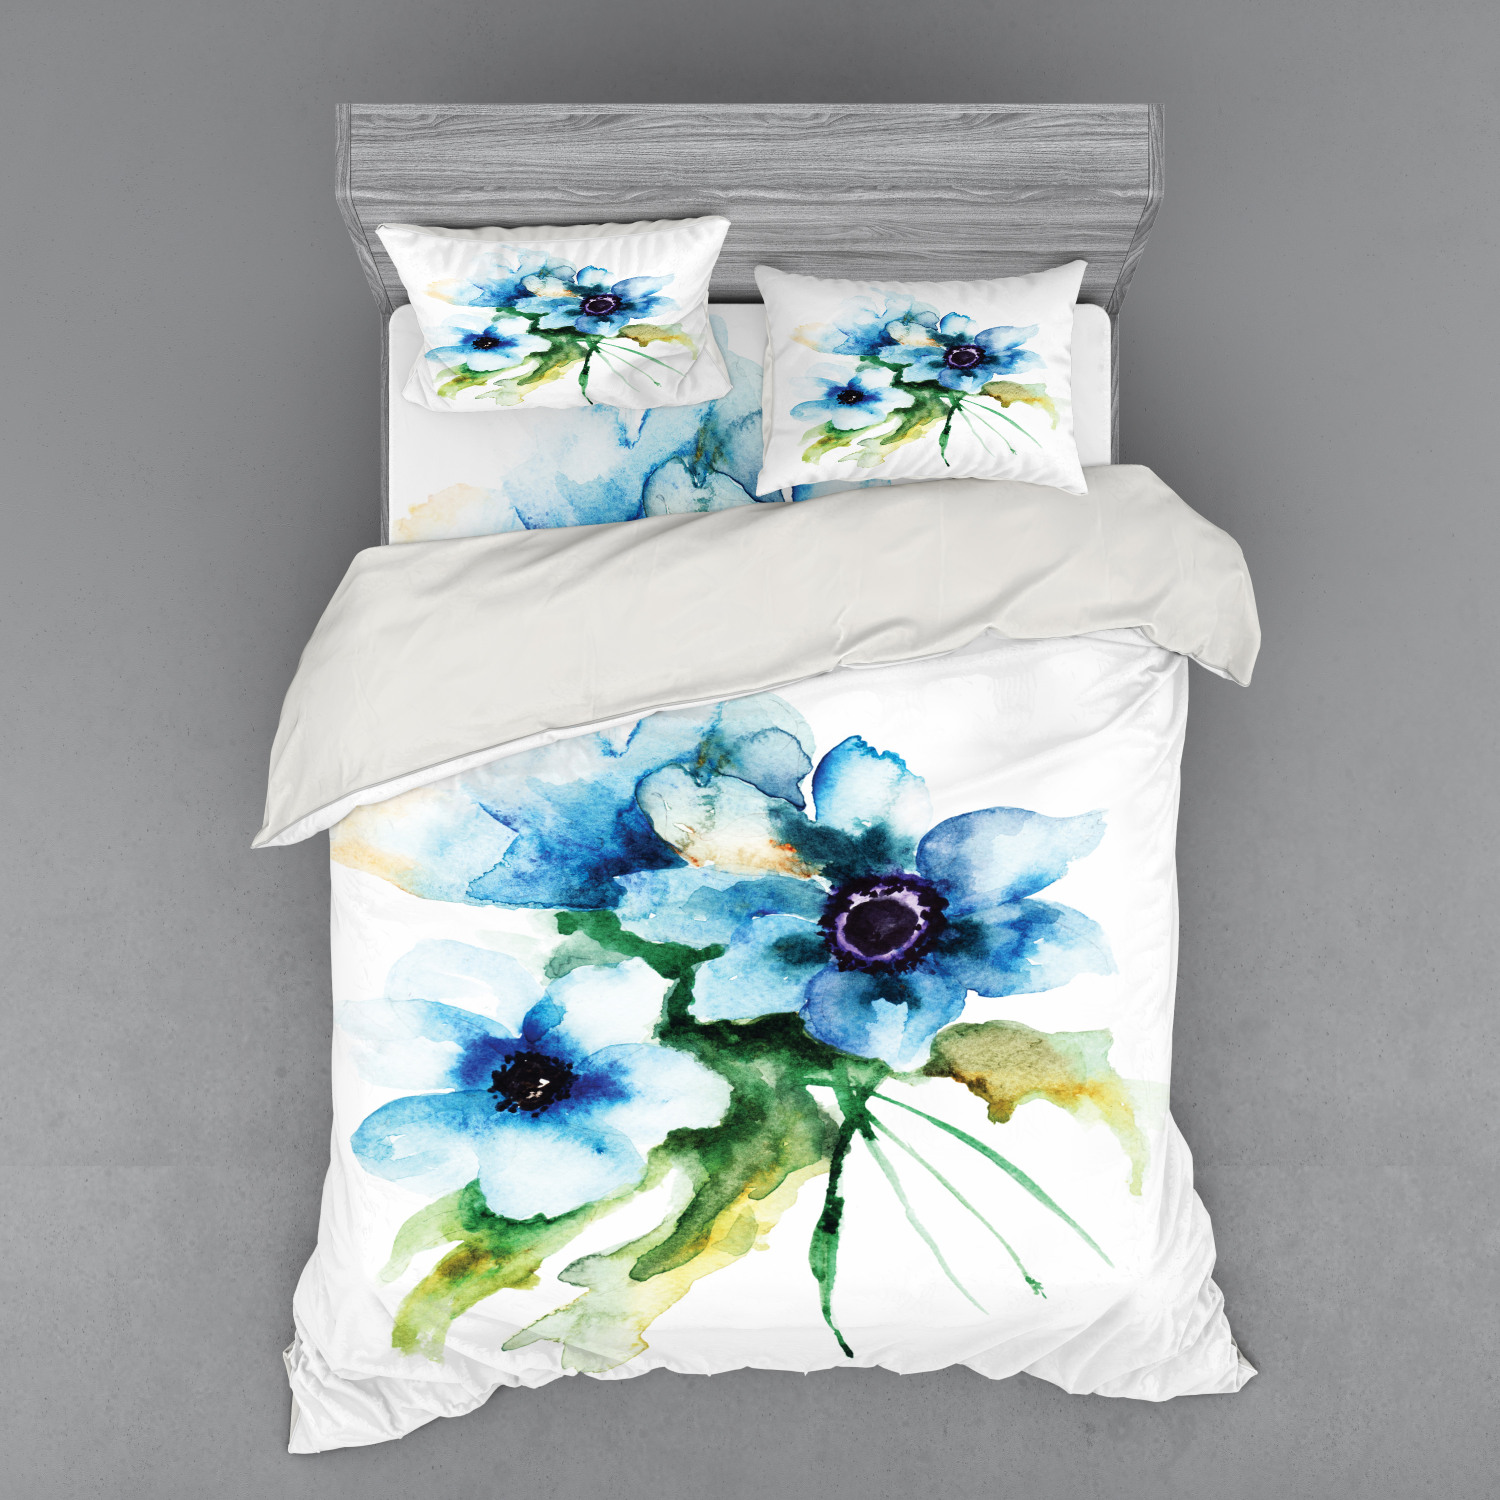 thumbnail 122 - Ambesonne Summer Bedding Set Duvet Cover Sham Fitted Sheet in 3 Sizes